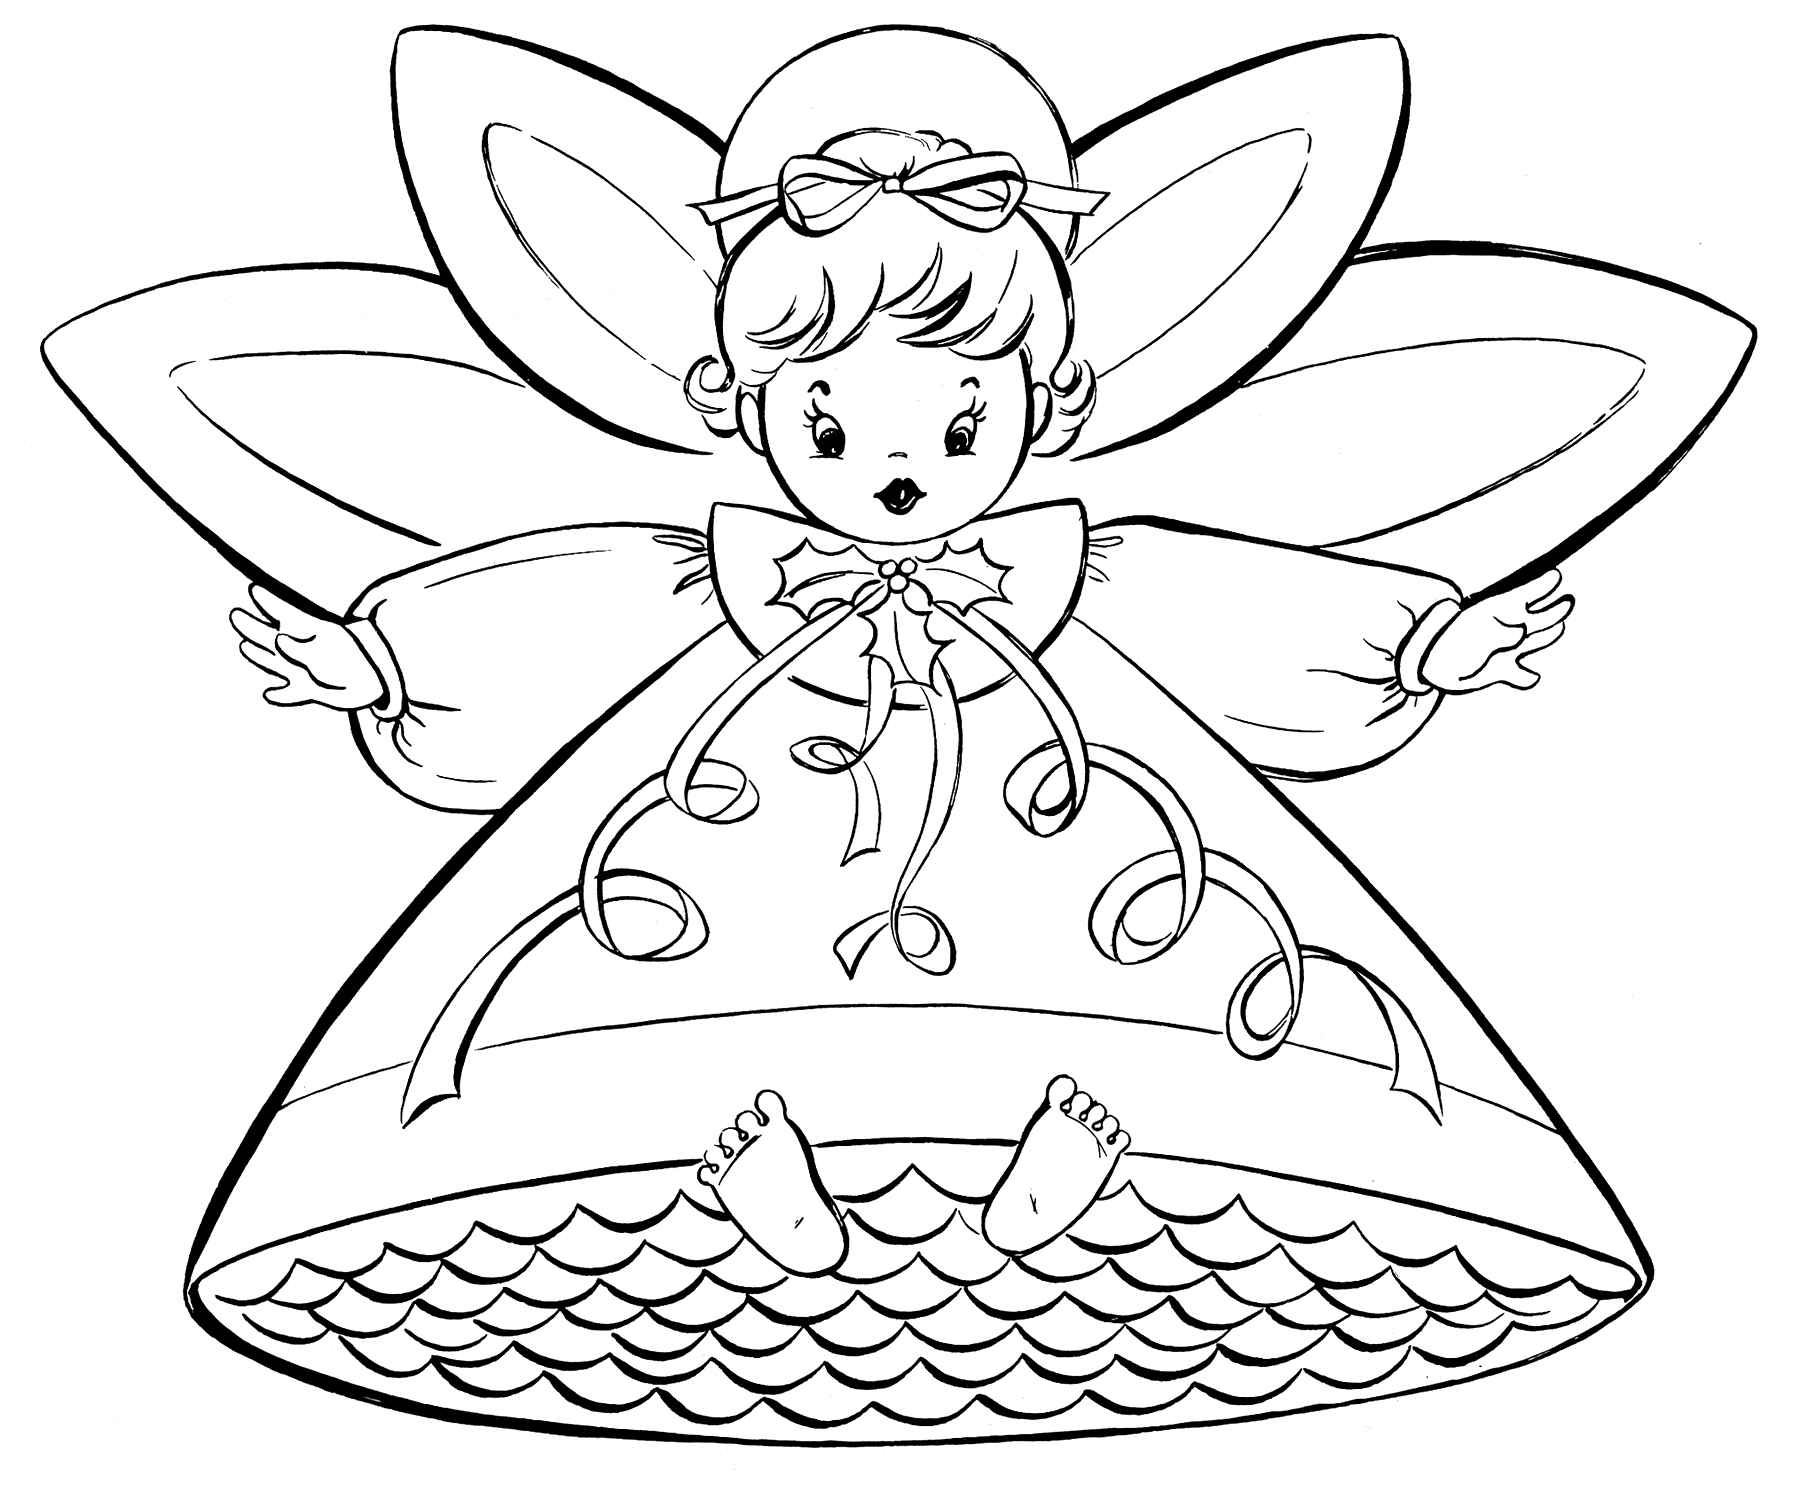 Christmas Coloring Pages For 4 Year Olds With Free Retro Angels The Graphics Fairy